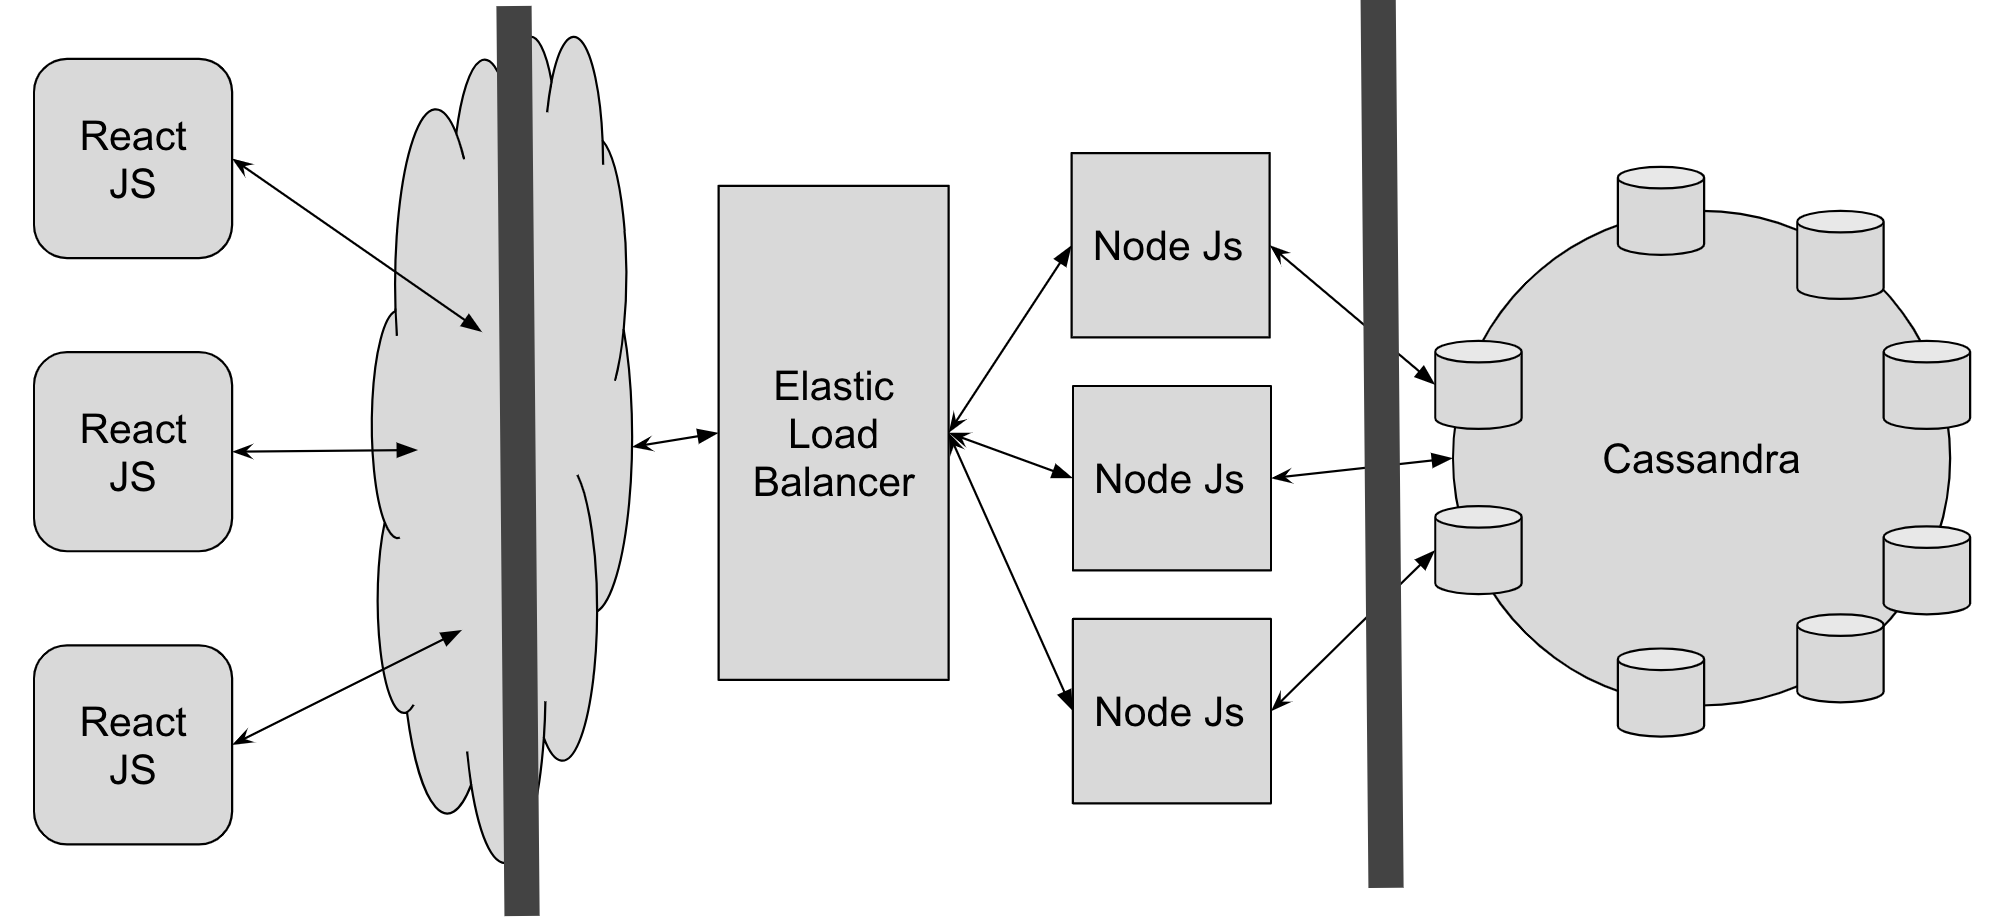 Modern Three Tier Architecture with Elastic Load Balancer